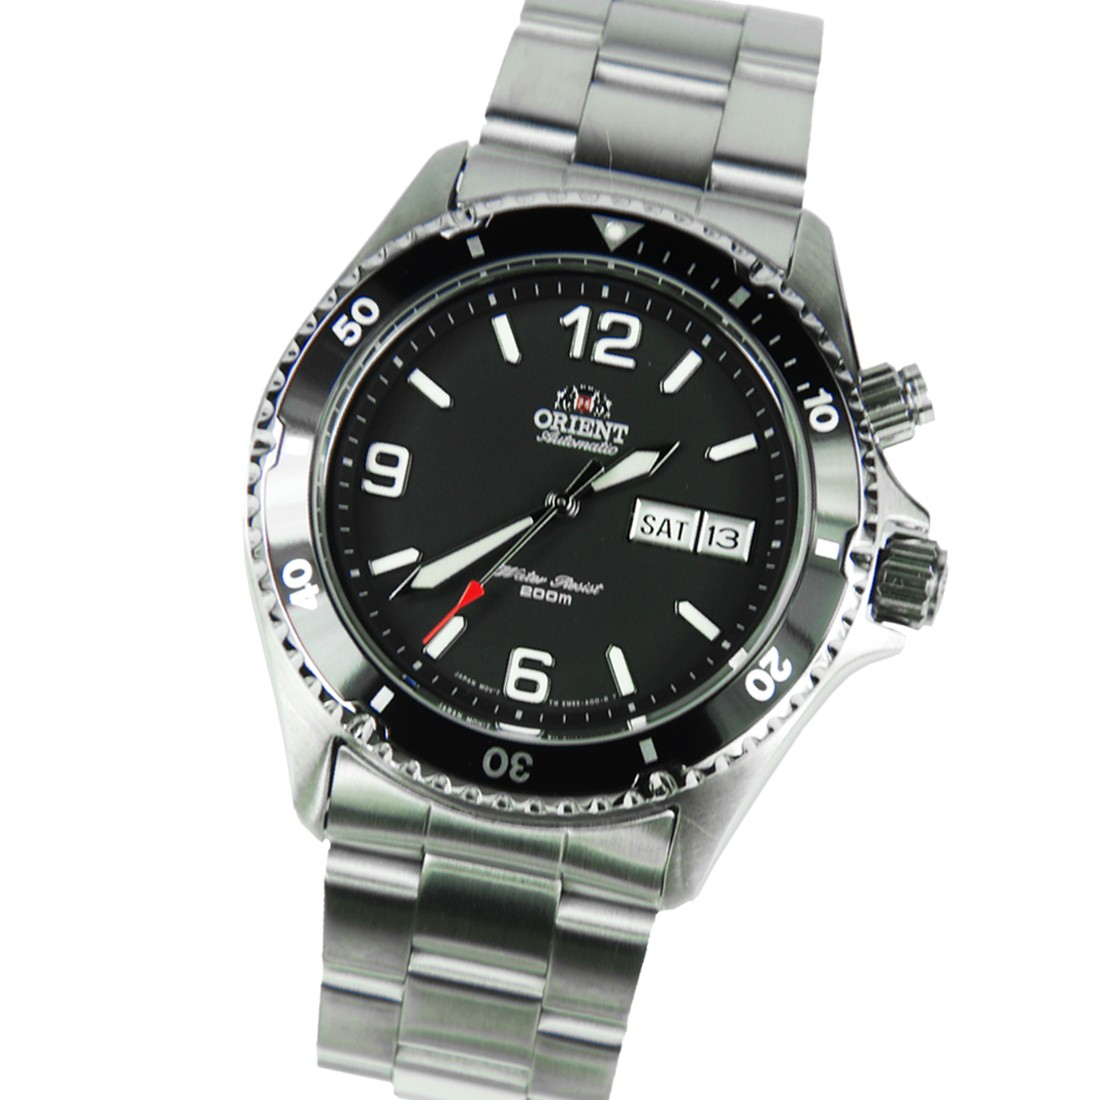 Orient Mako Automatic Dive Watch Review